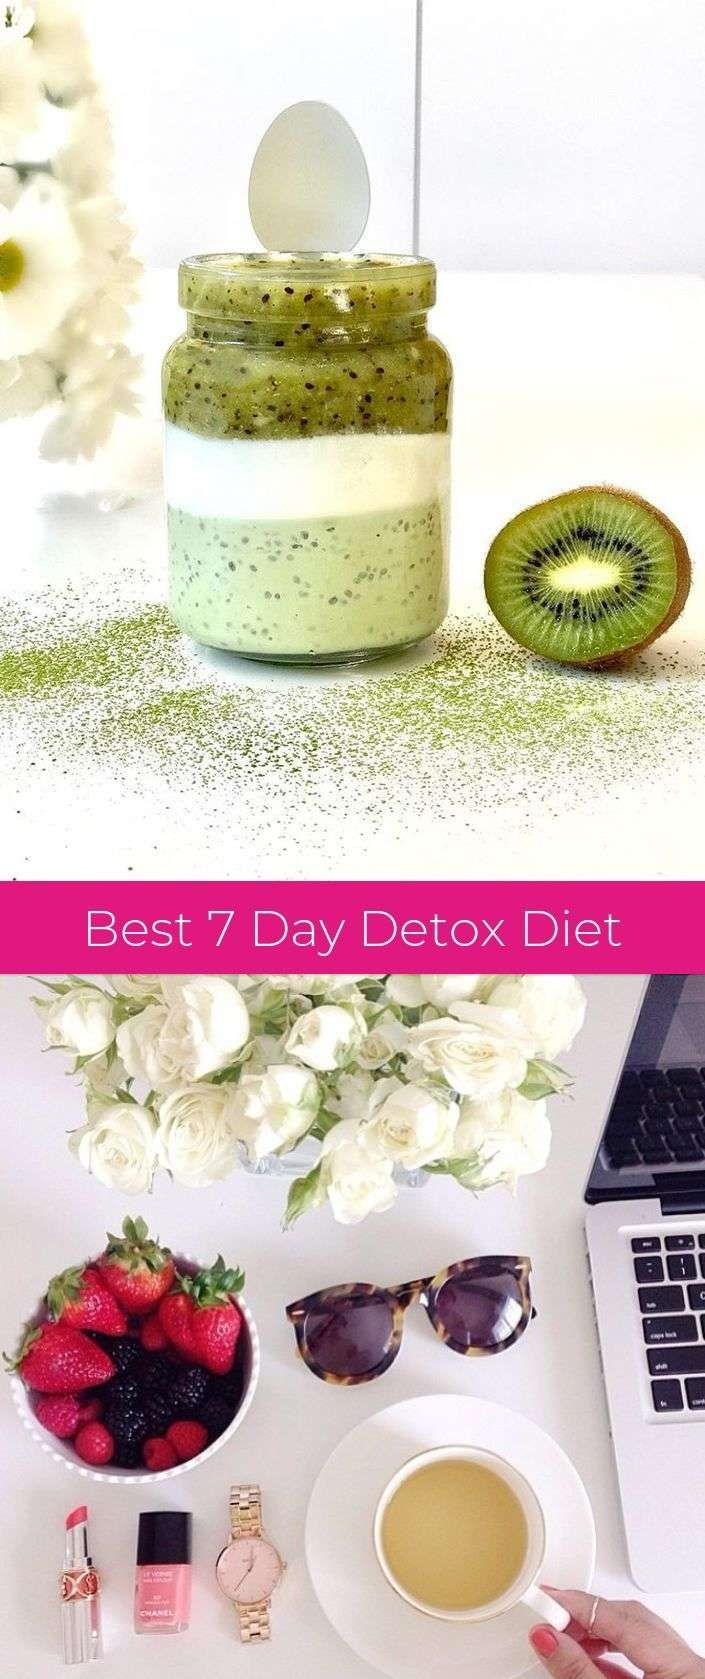 Detox Diet Plan Dubai | Juice Detox Recipes | Pinterest | Detox